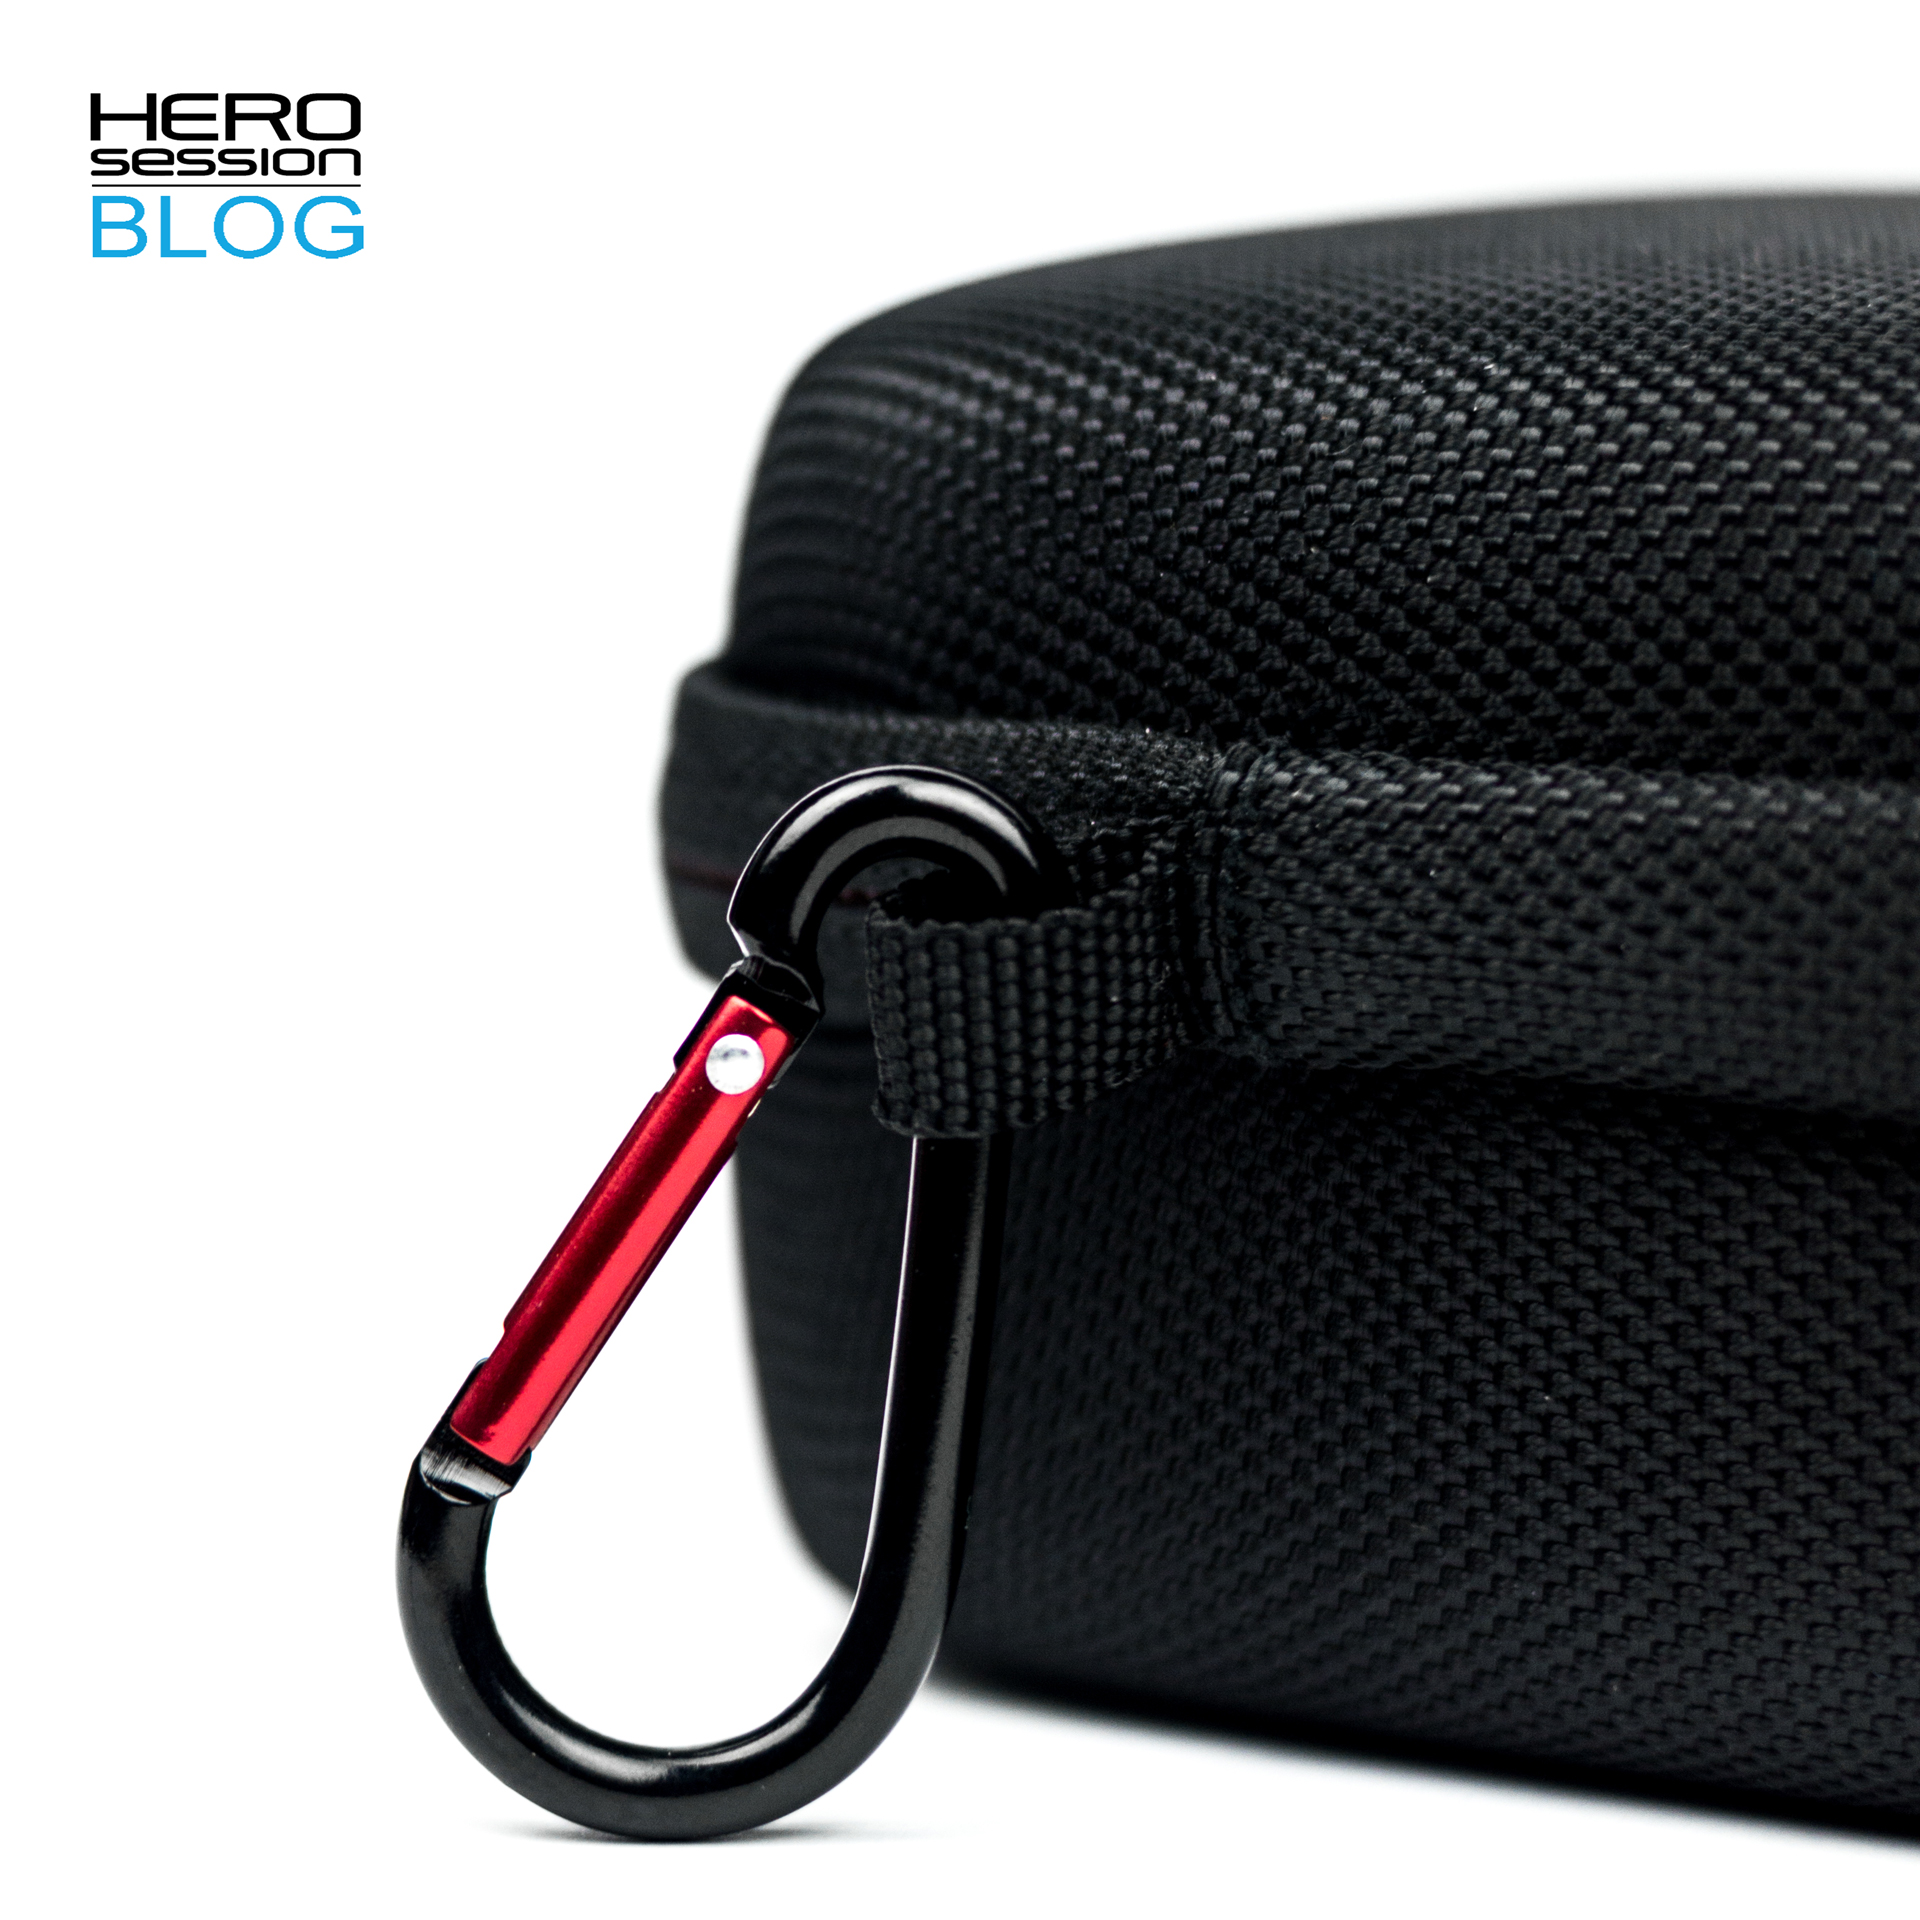 Moschettone Smatree Smacase GS75 Case GoPro Hero 4 Session Review Recensione